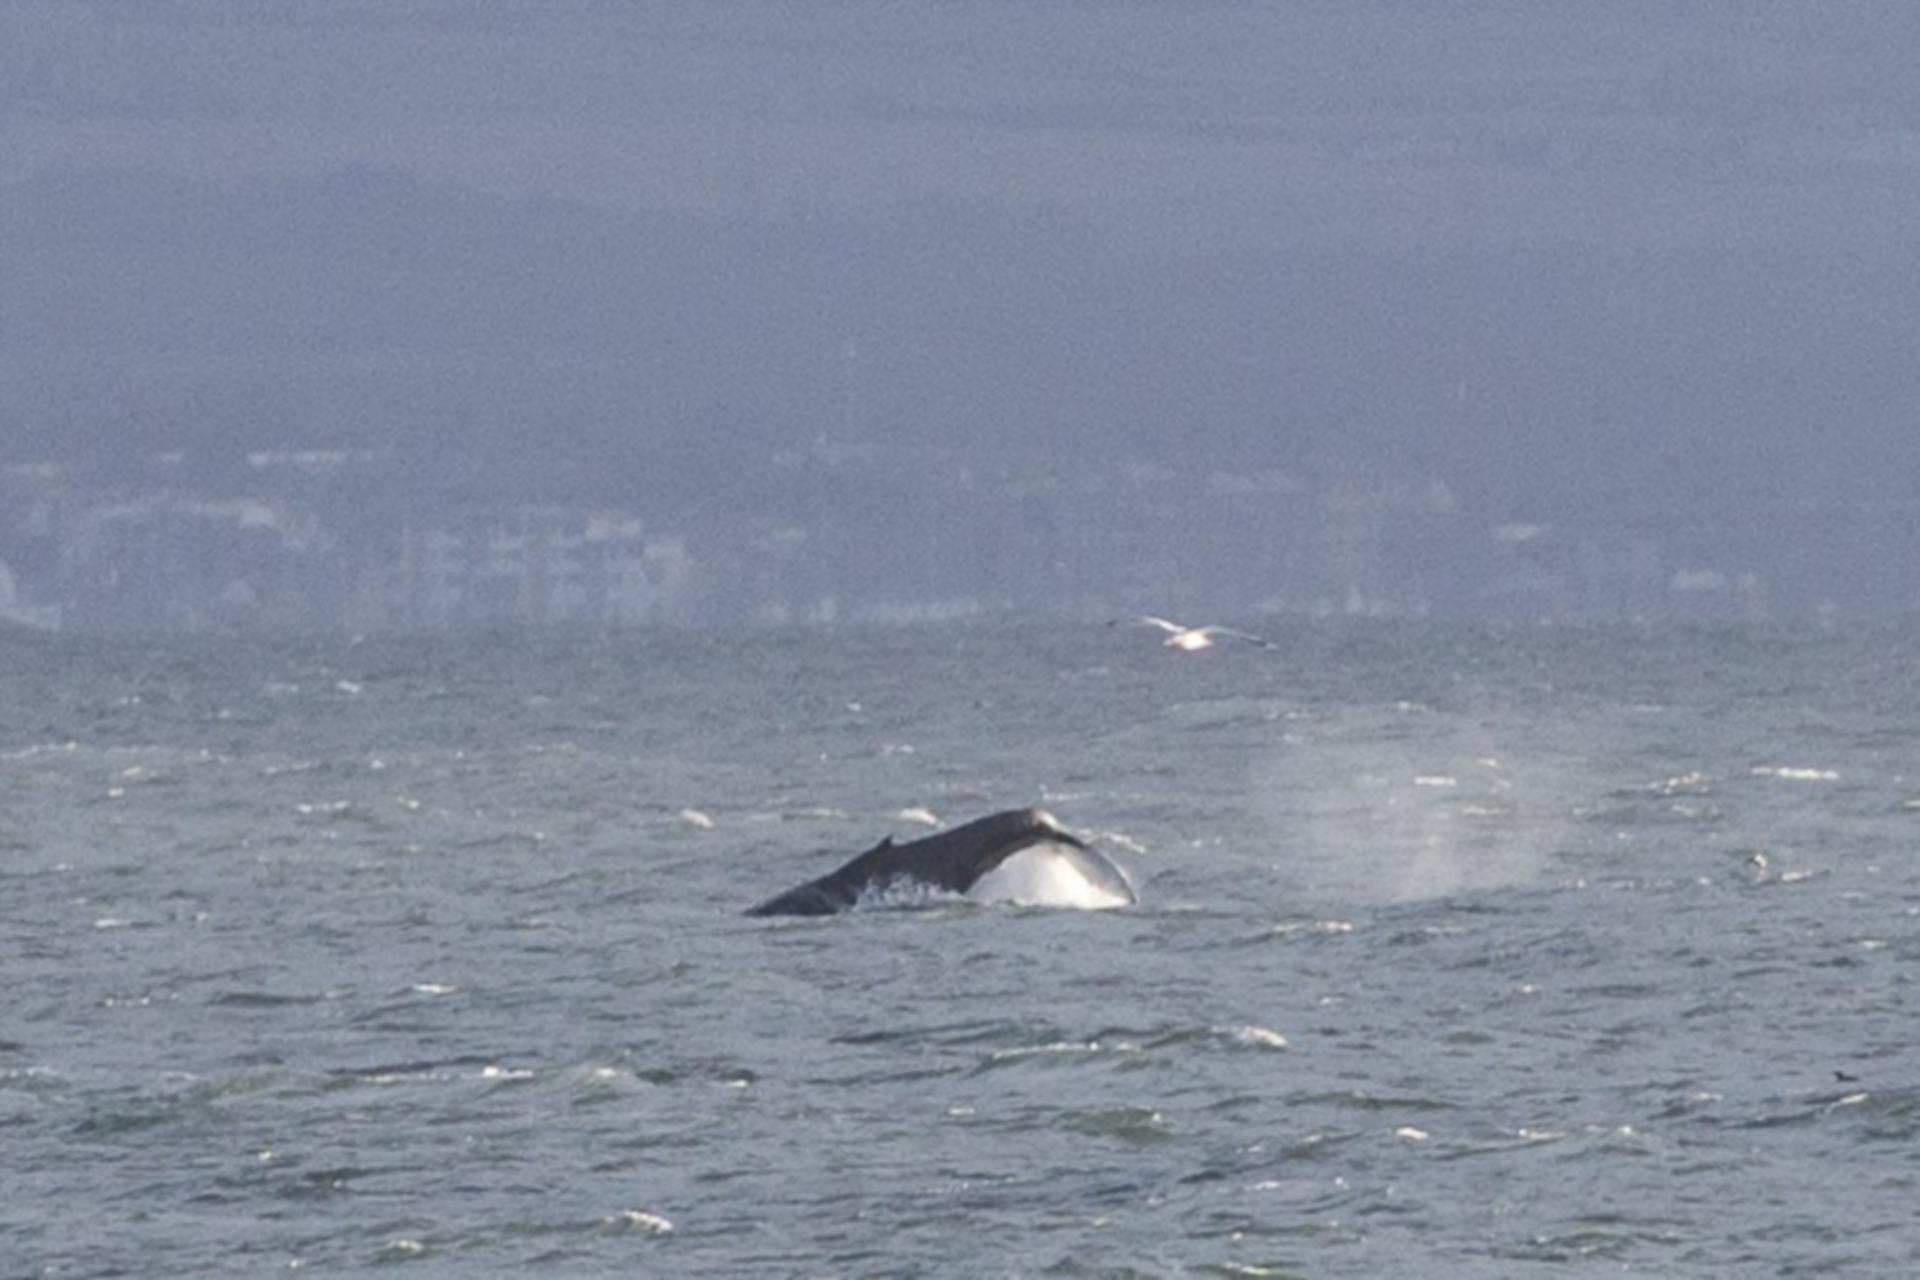 The humpback whale off Kinghorn.